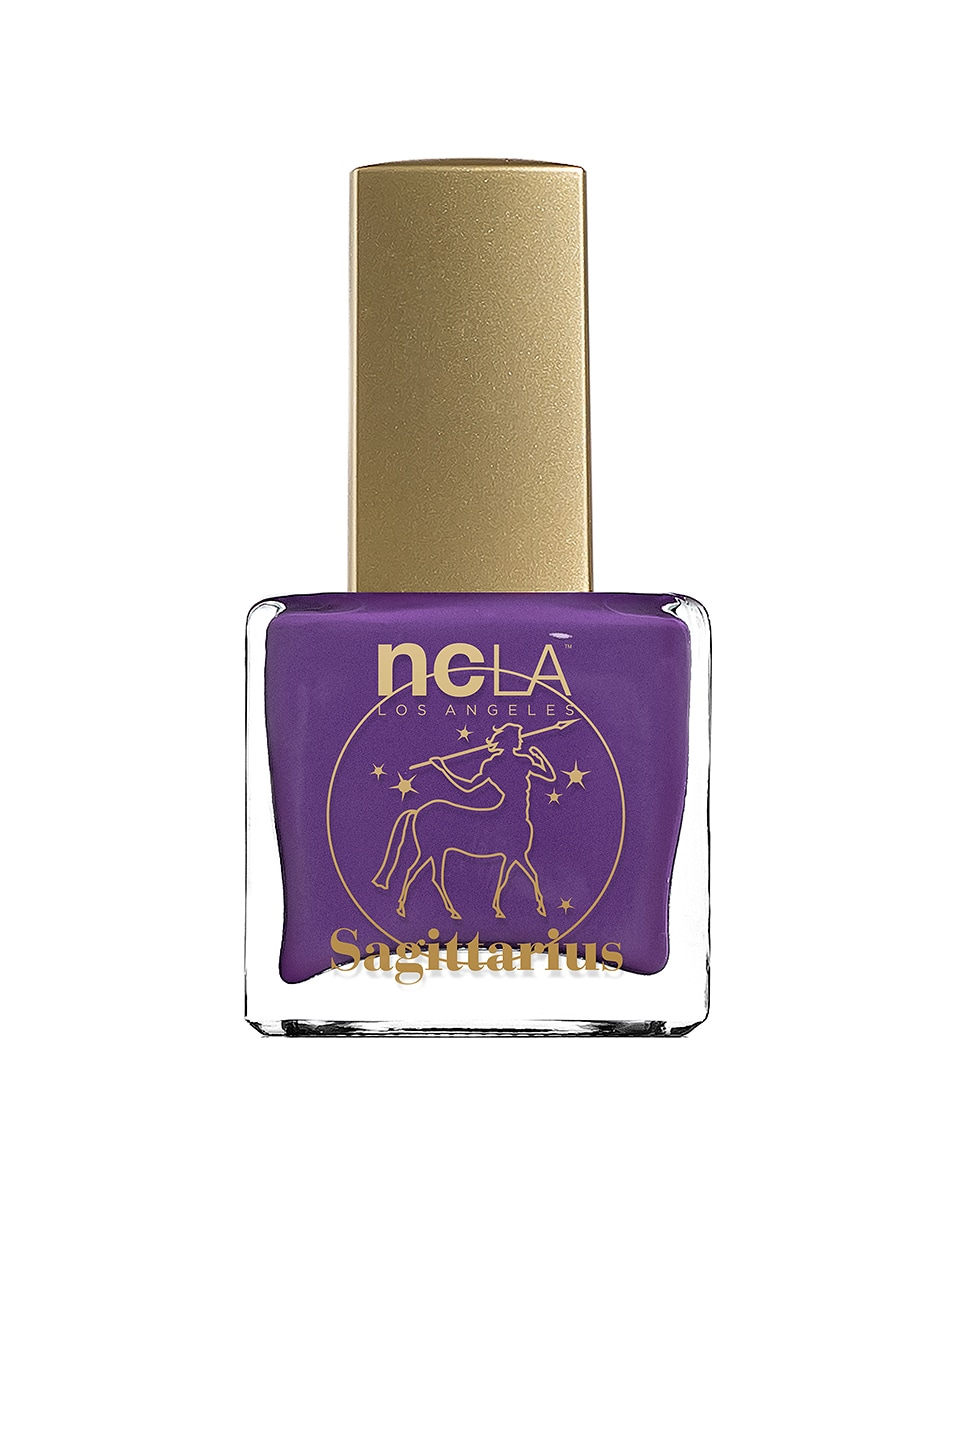 NCLA What's Your Sign? Sagittarius Lacquer in Purple Cream